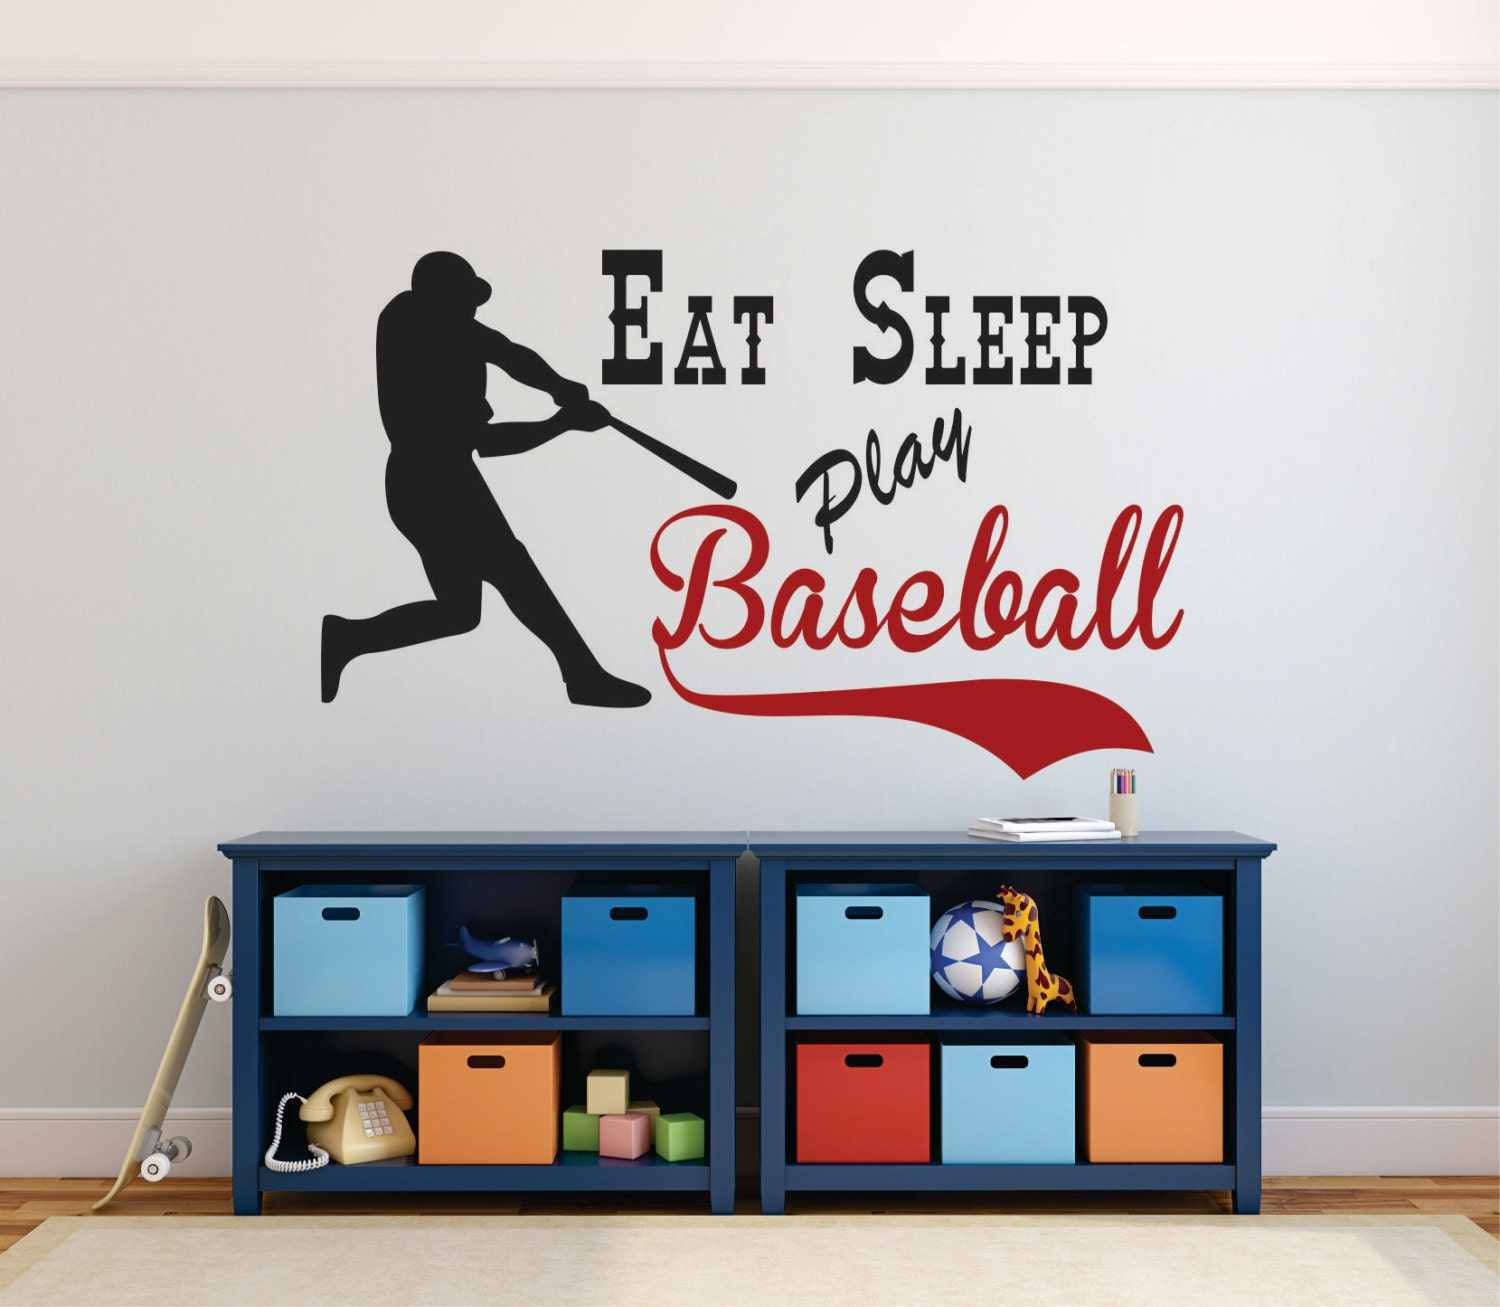 Baseball Wall Decal Eat Sleep Play Baseball Baseball Decor - Custom vinyl baseball decals